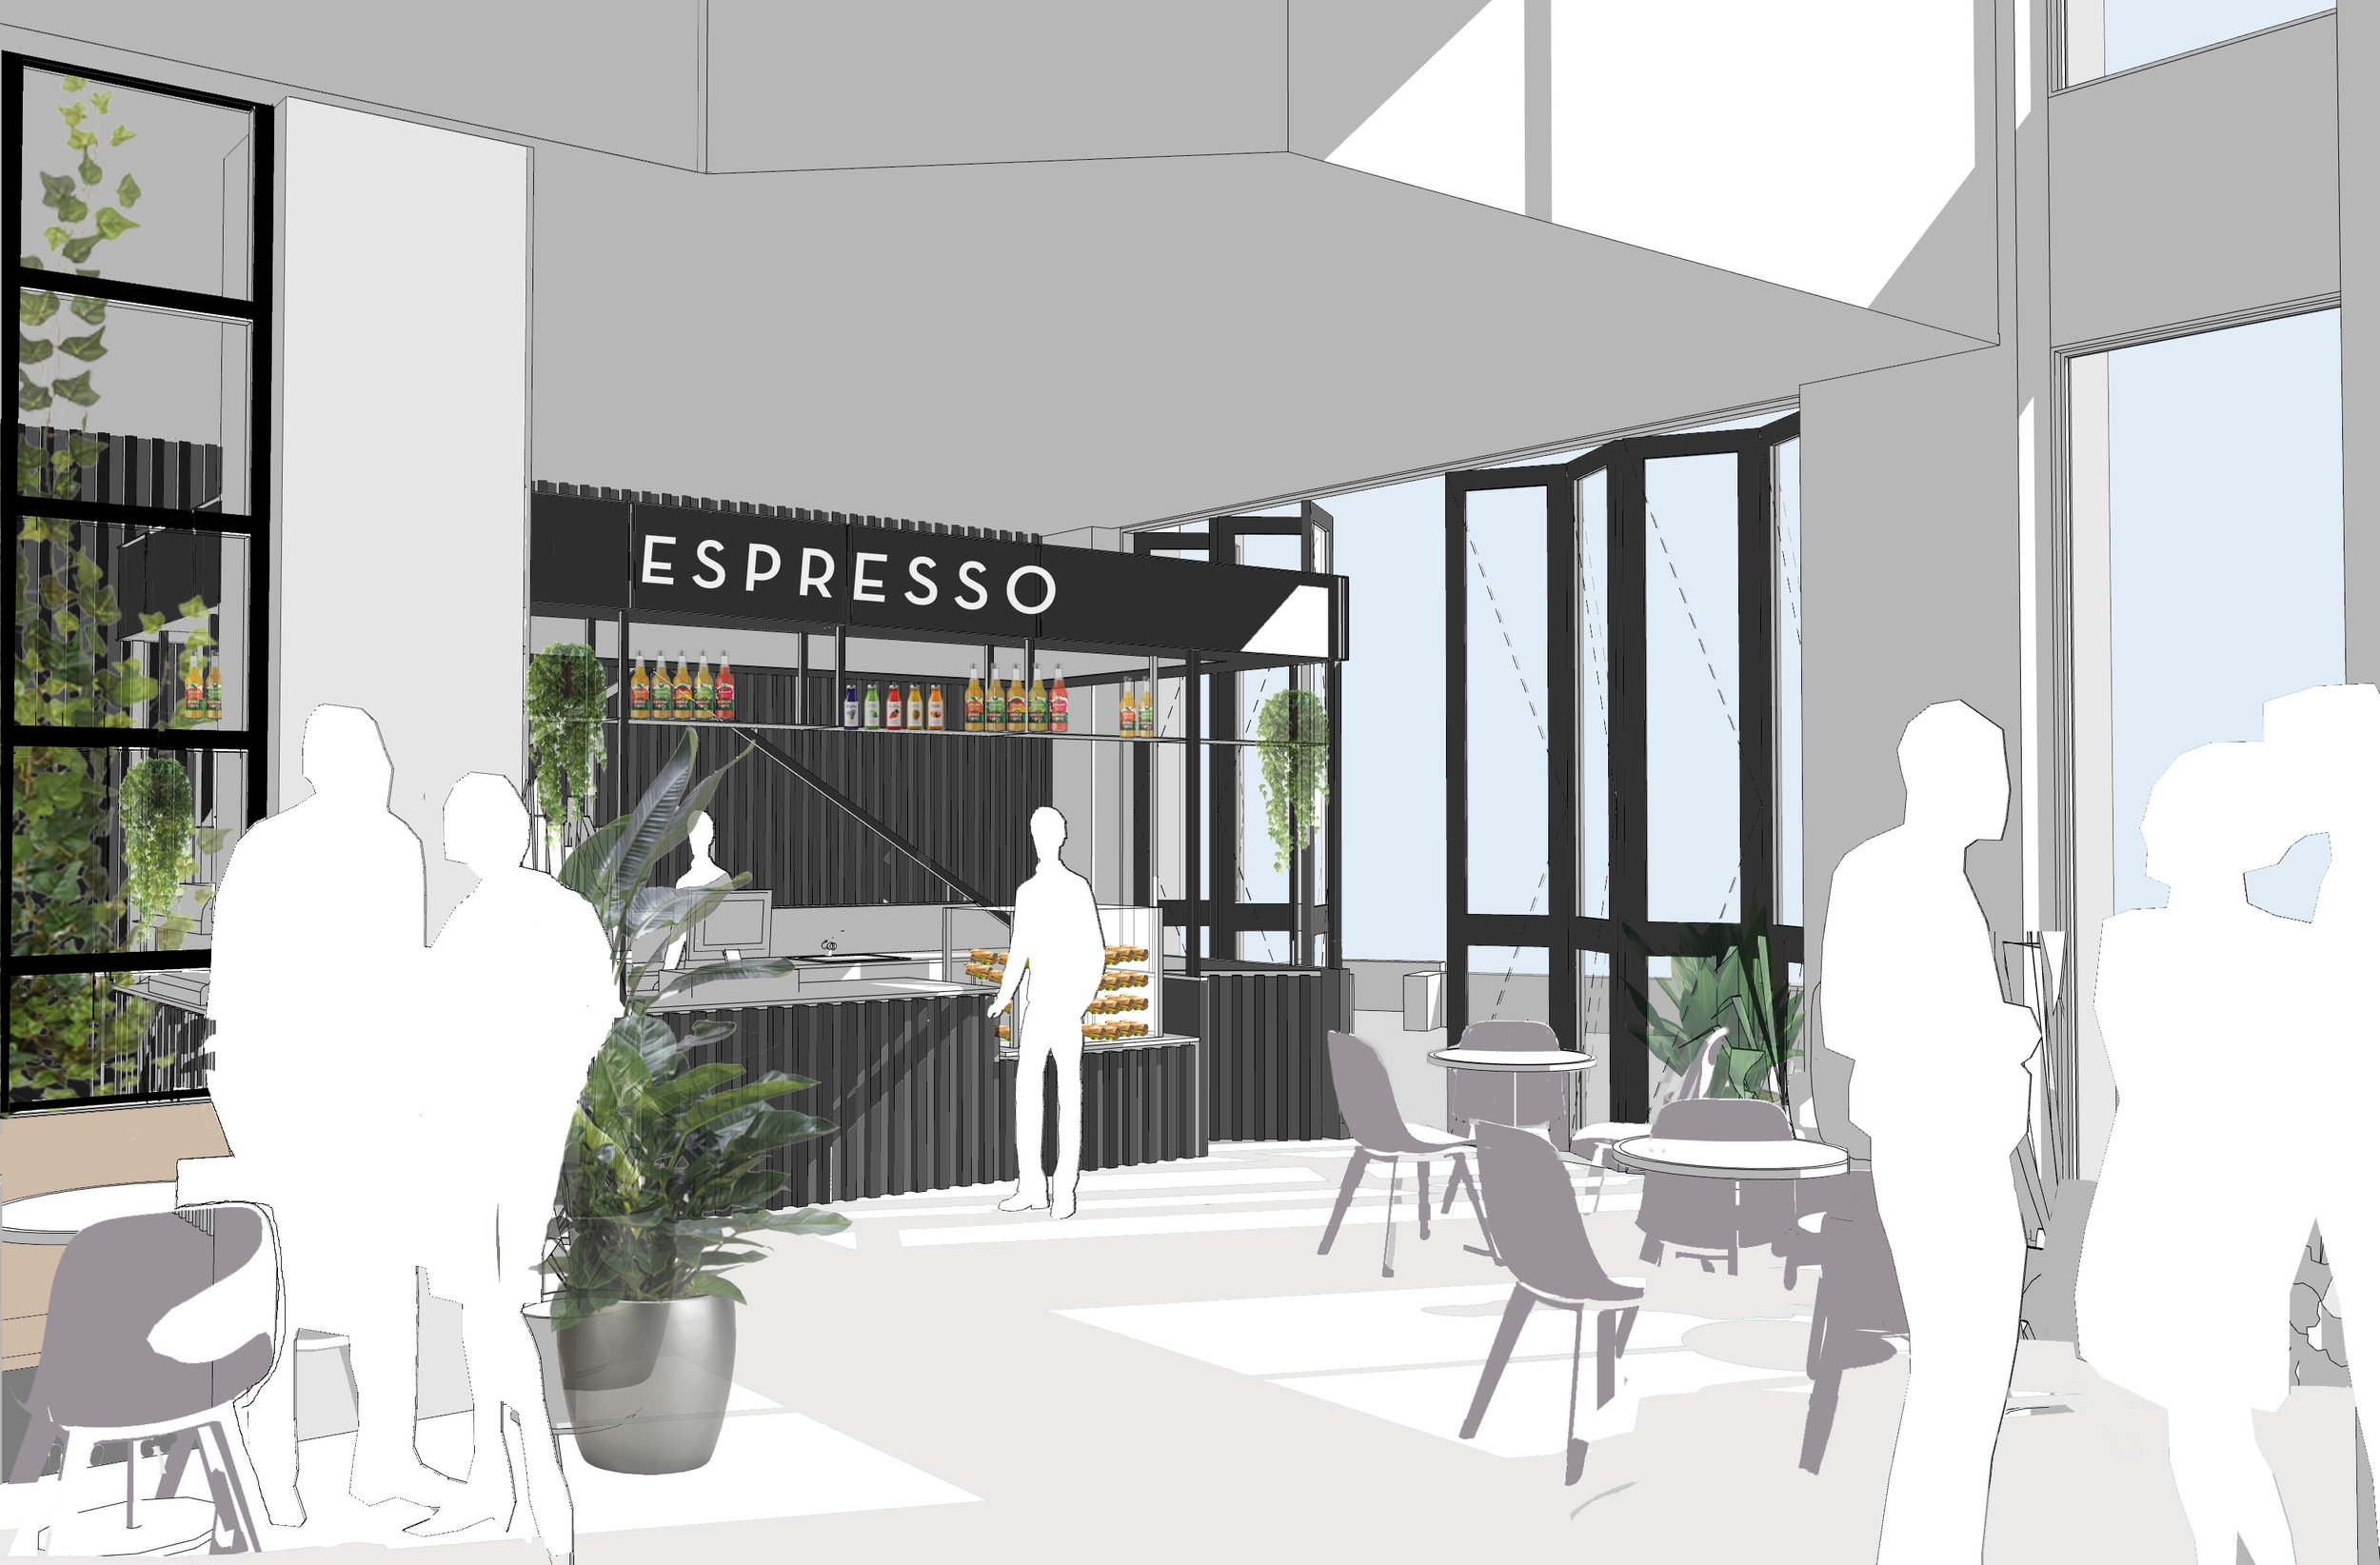 - We've been working on a range of great projects this year from a new café, to a number of alteration projects, to concept work for a lobby refurbishment. Looking forward to seeing these projects take shape on site!